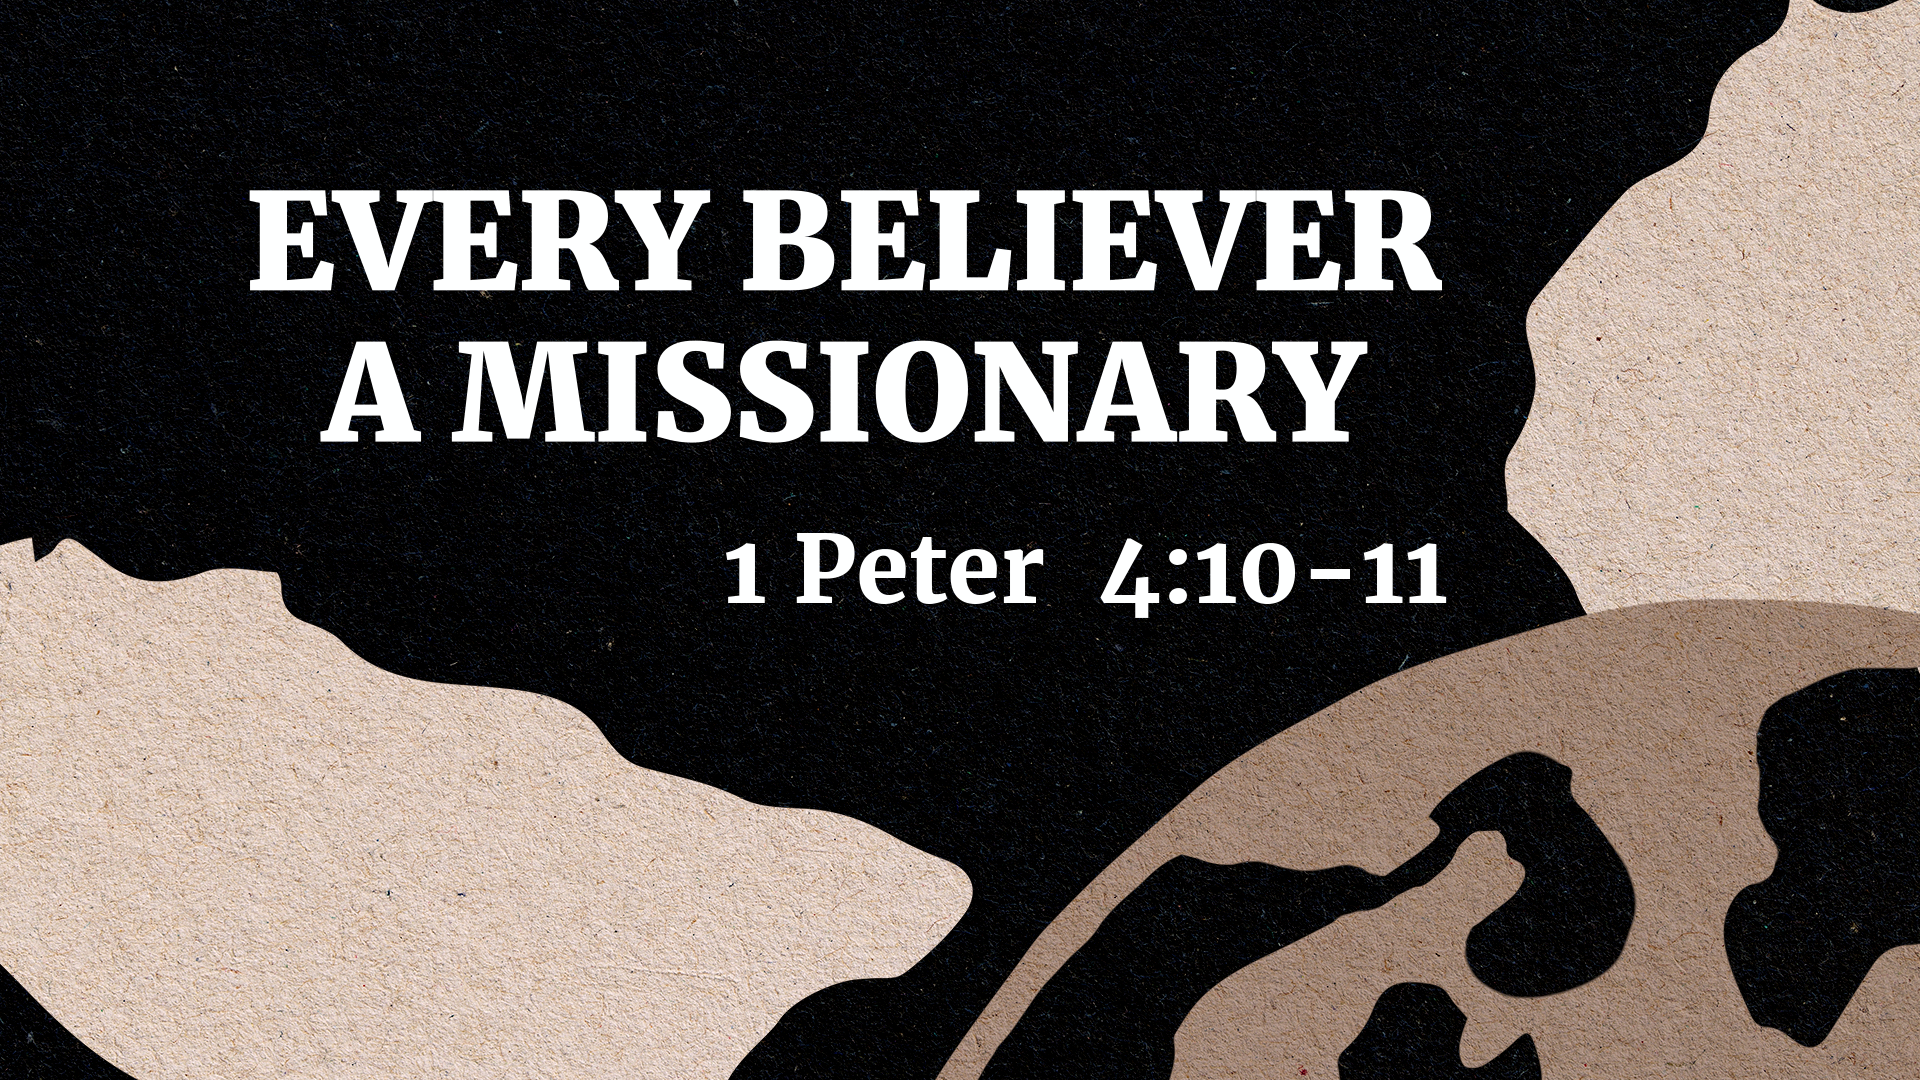 Every Believer A Missionary